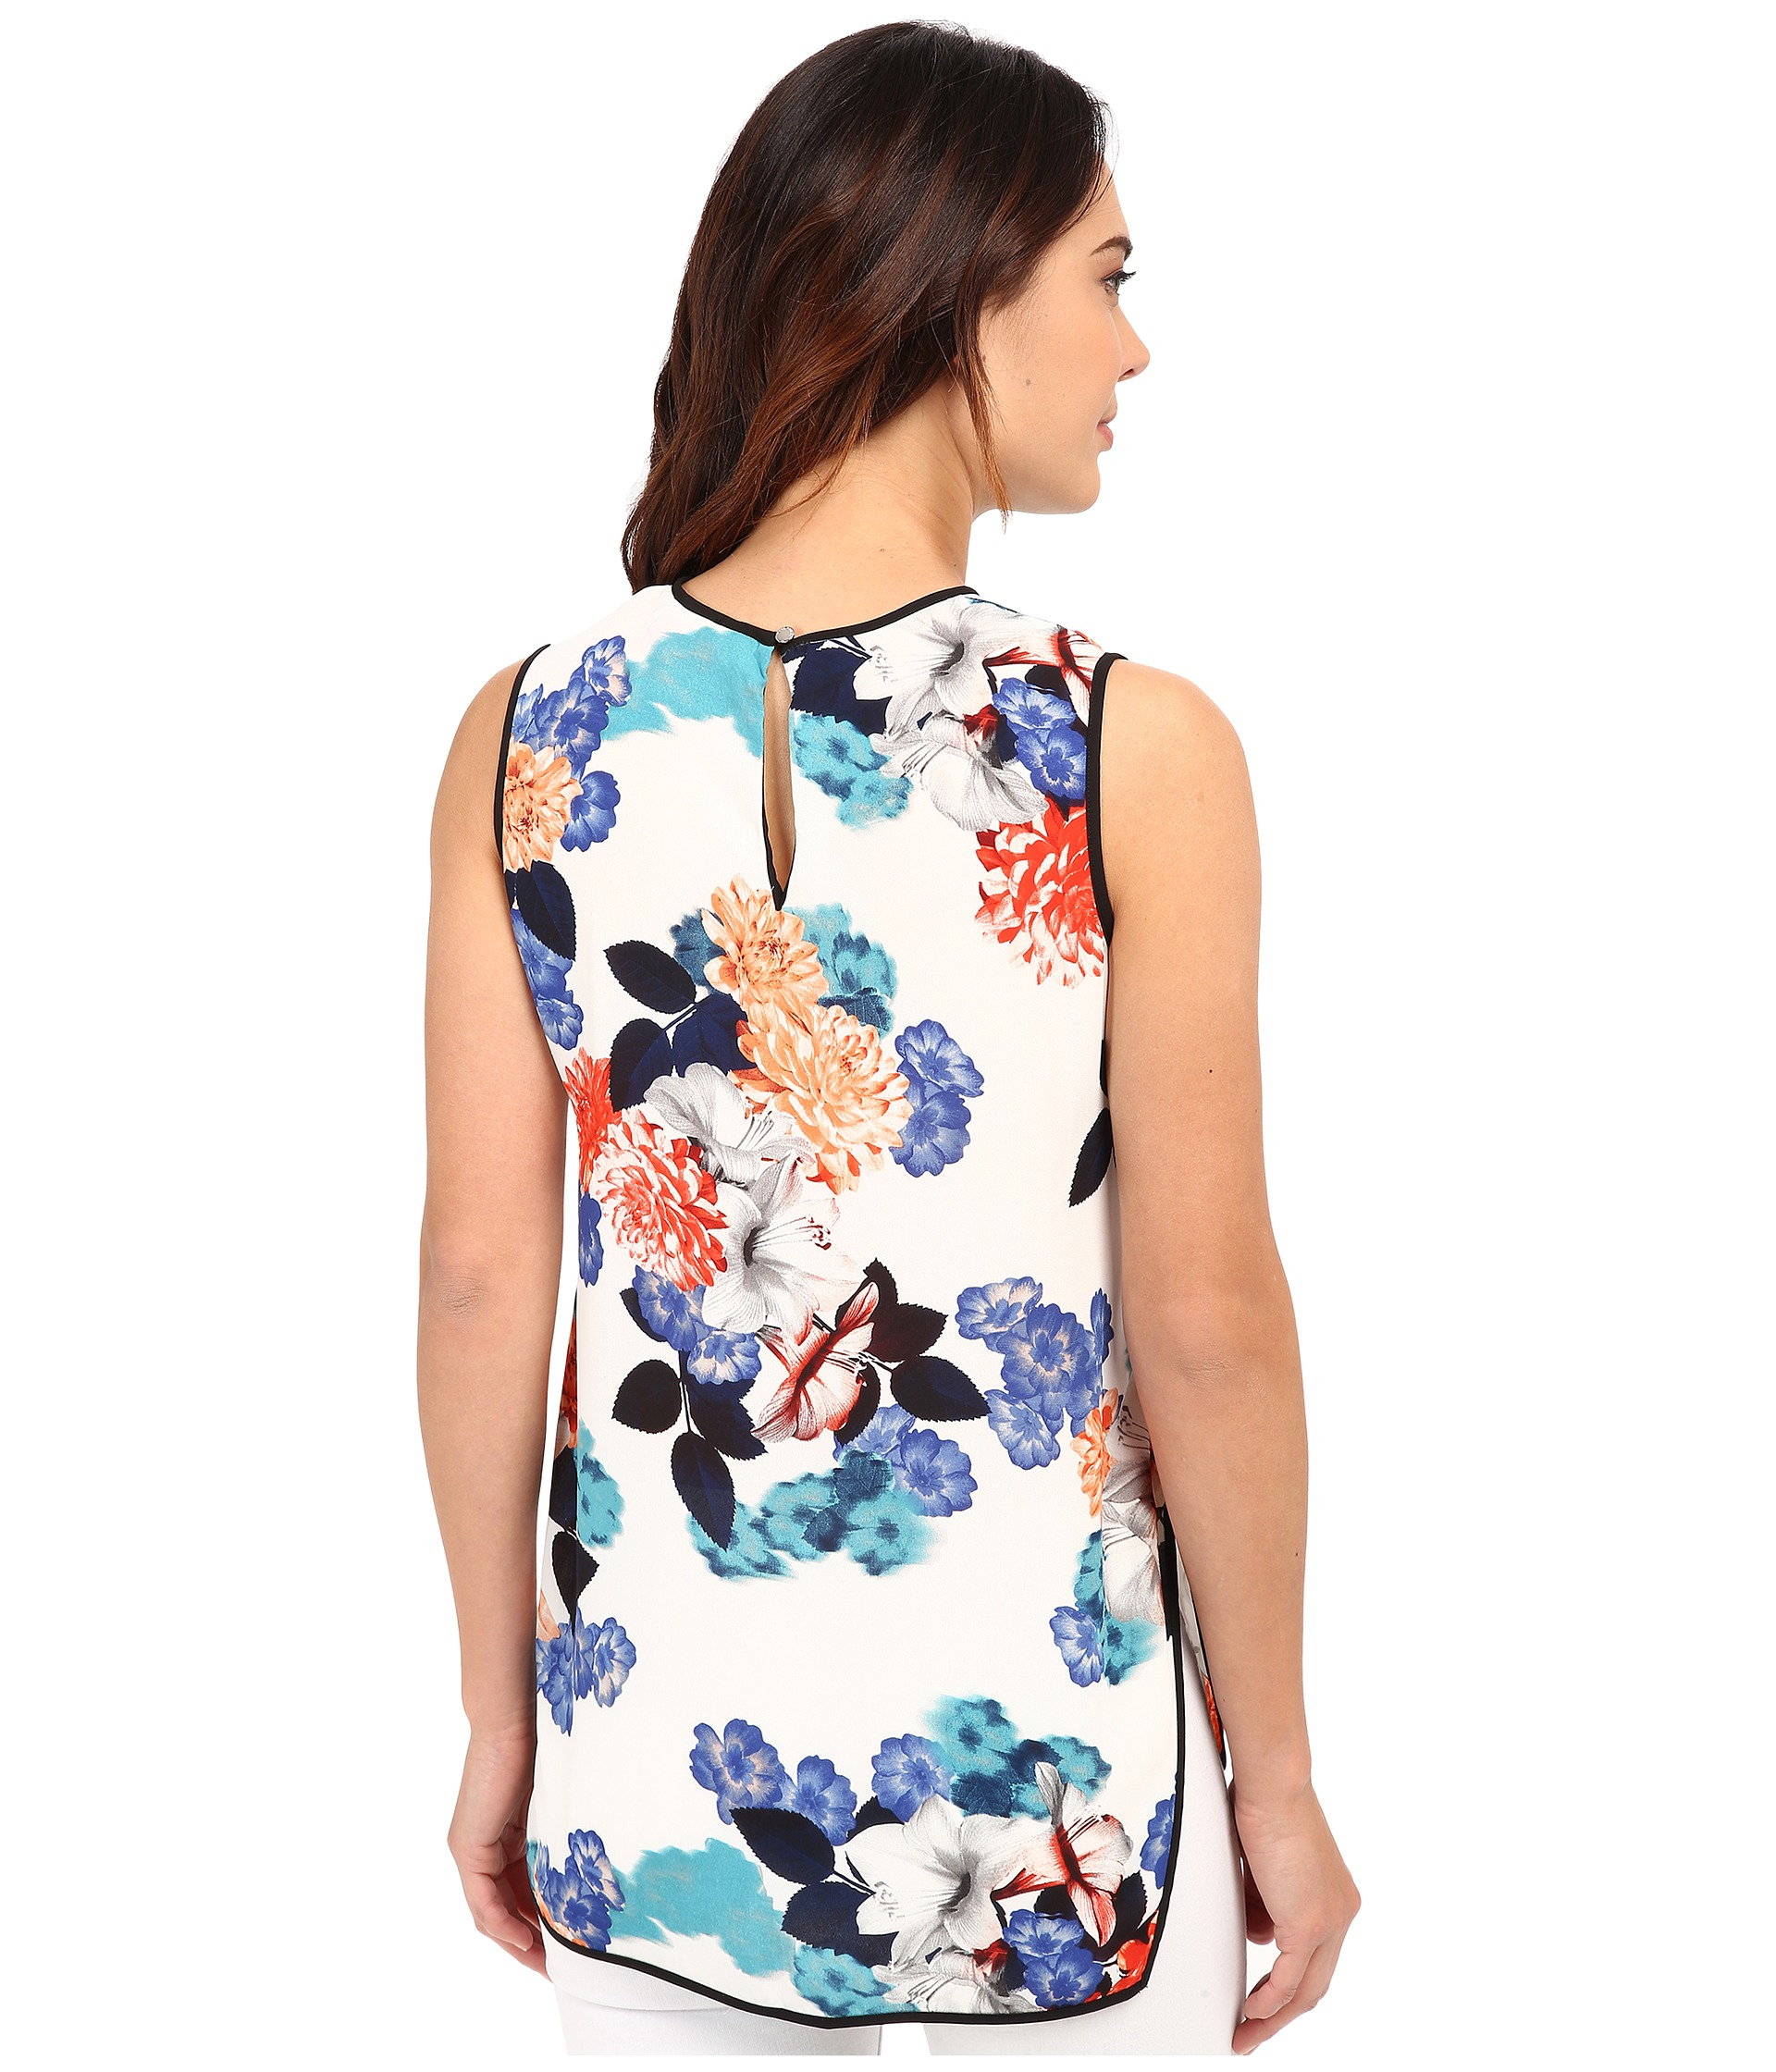 def409a5c166c0 Lyst - Vince Camuto Sleeveless Floral Garden Blouse